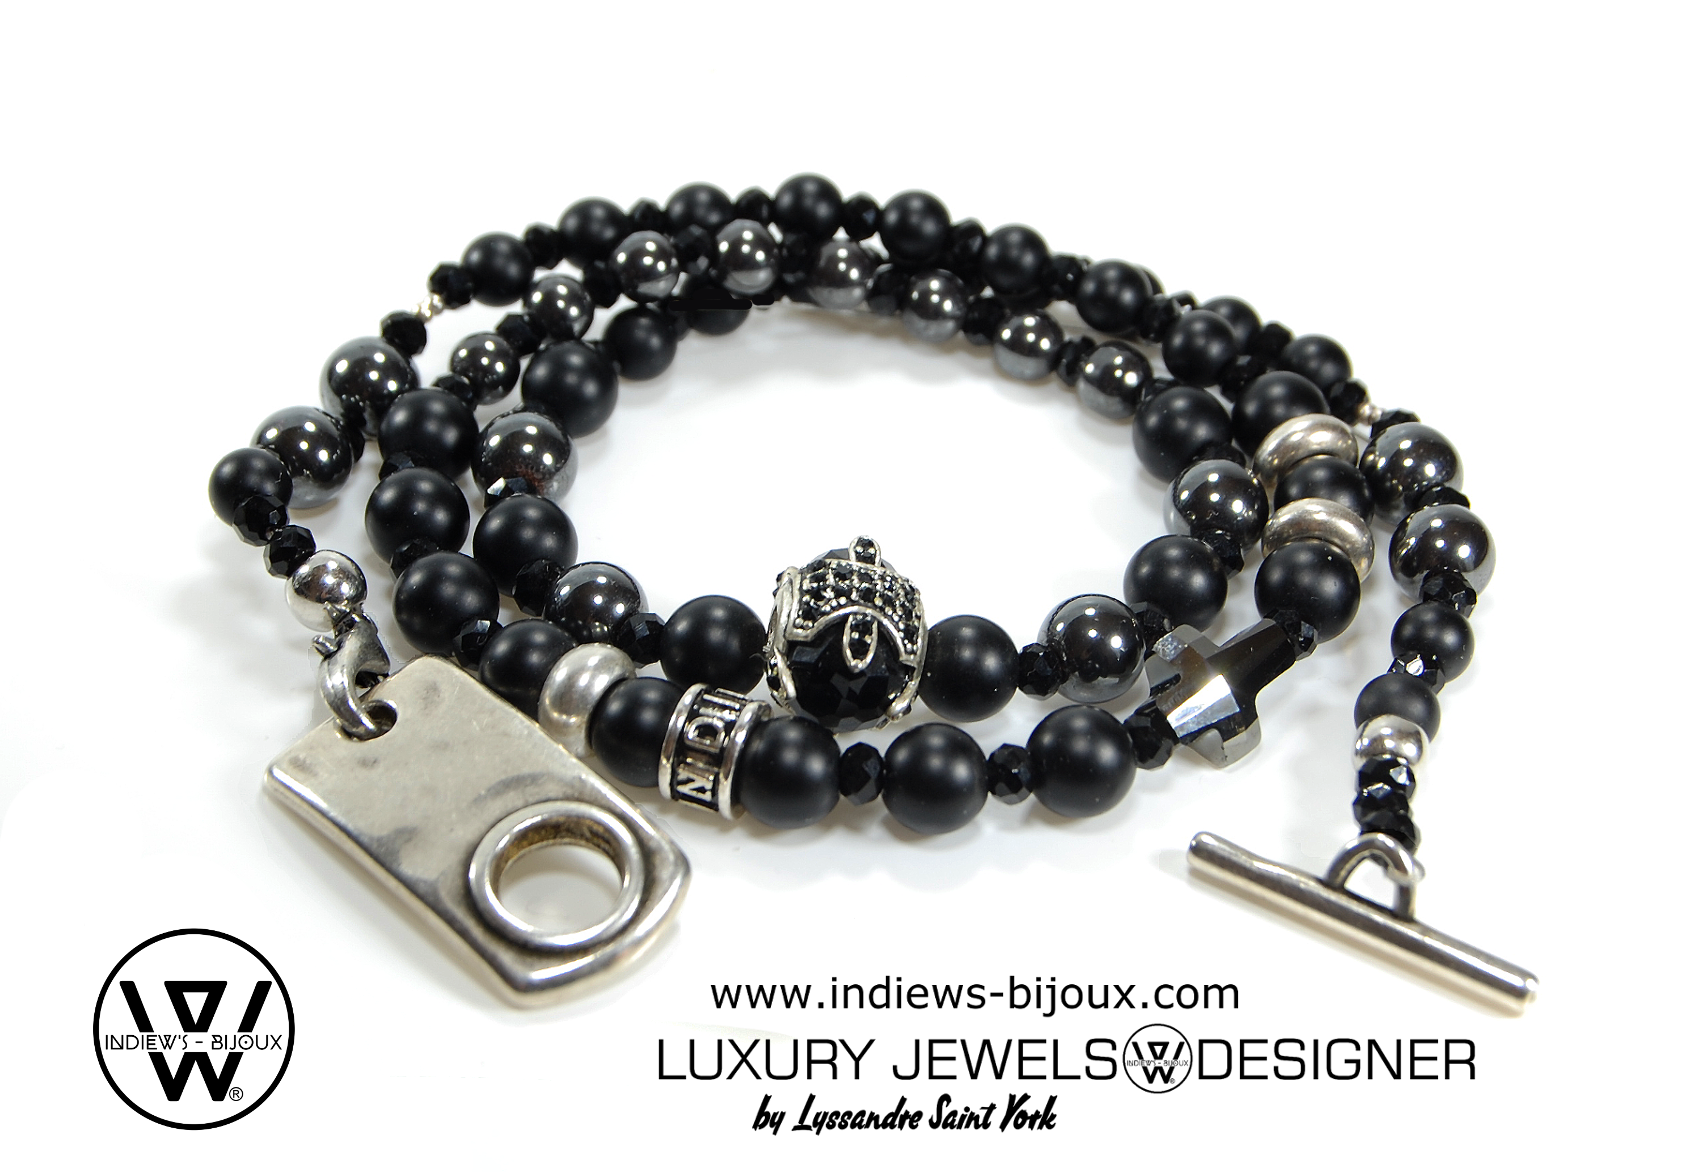 bracelet homme perle fashion 3 tours croix swarovski indiews bijoux. Black Bedroom Furniture Sets. Home Design Ideas